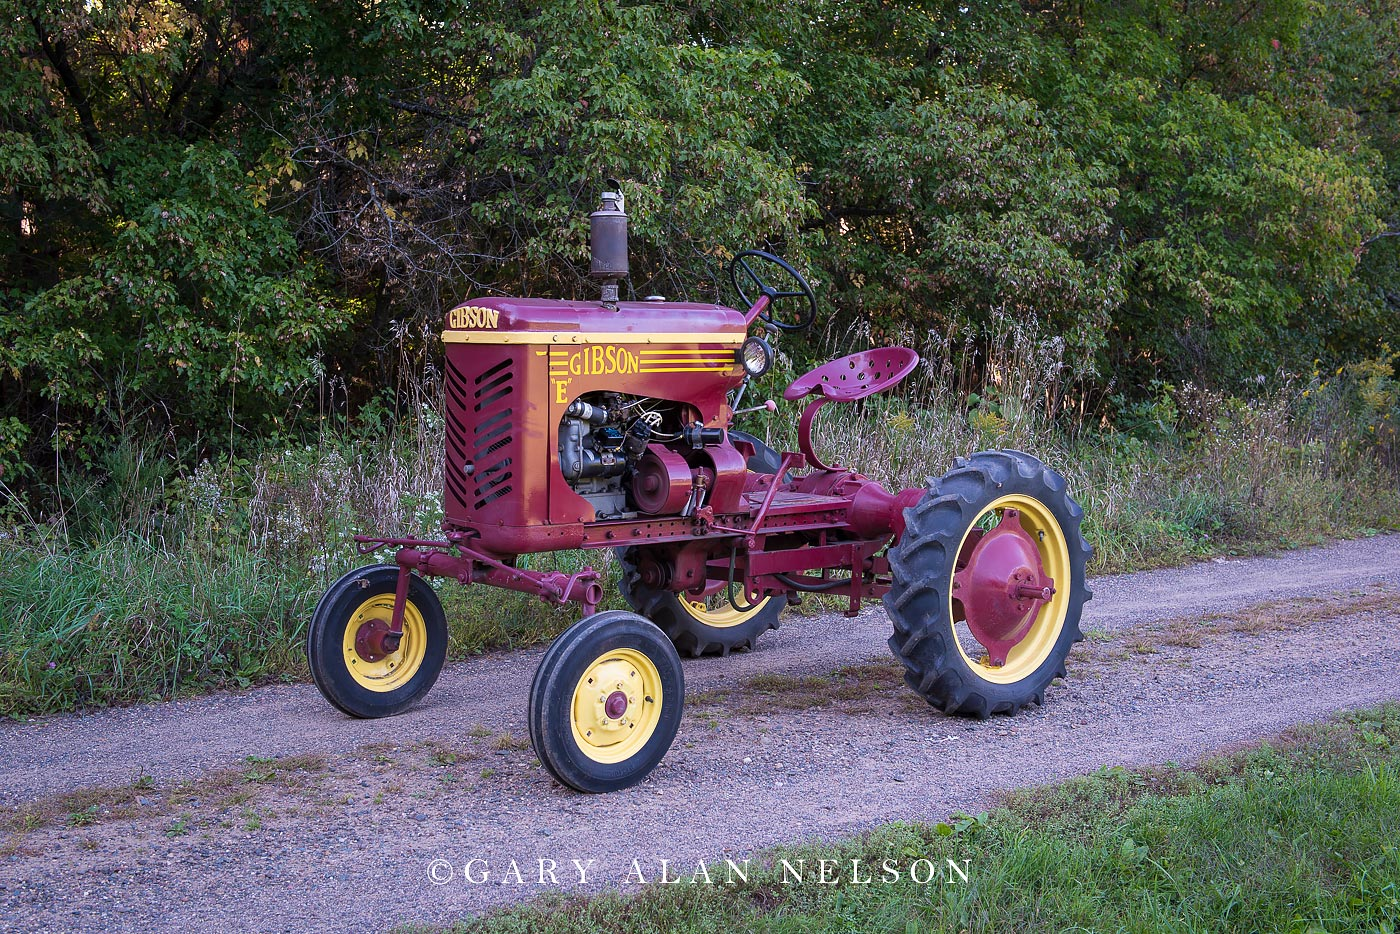 Gibson, antique tractor, photo